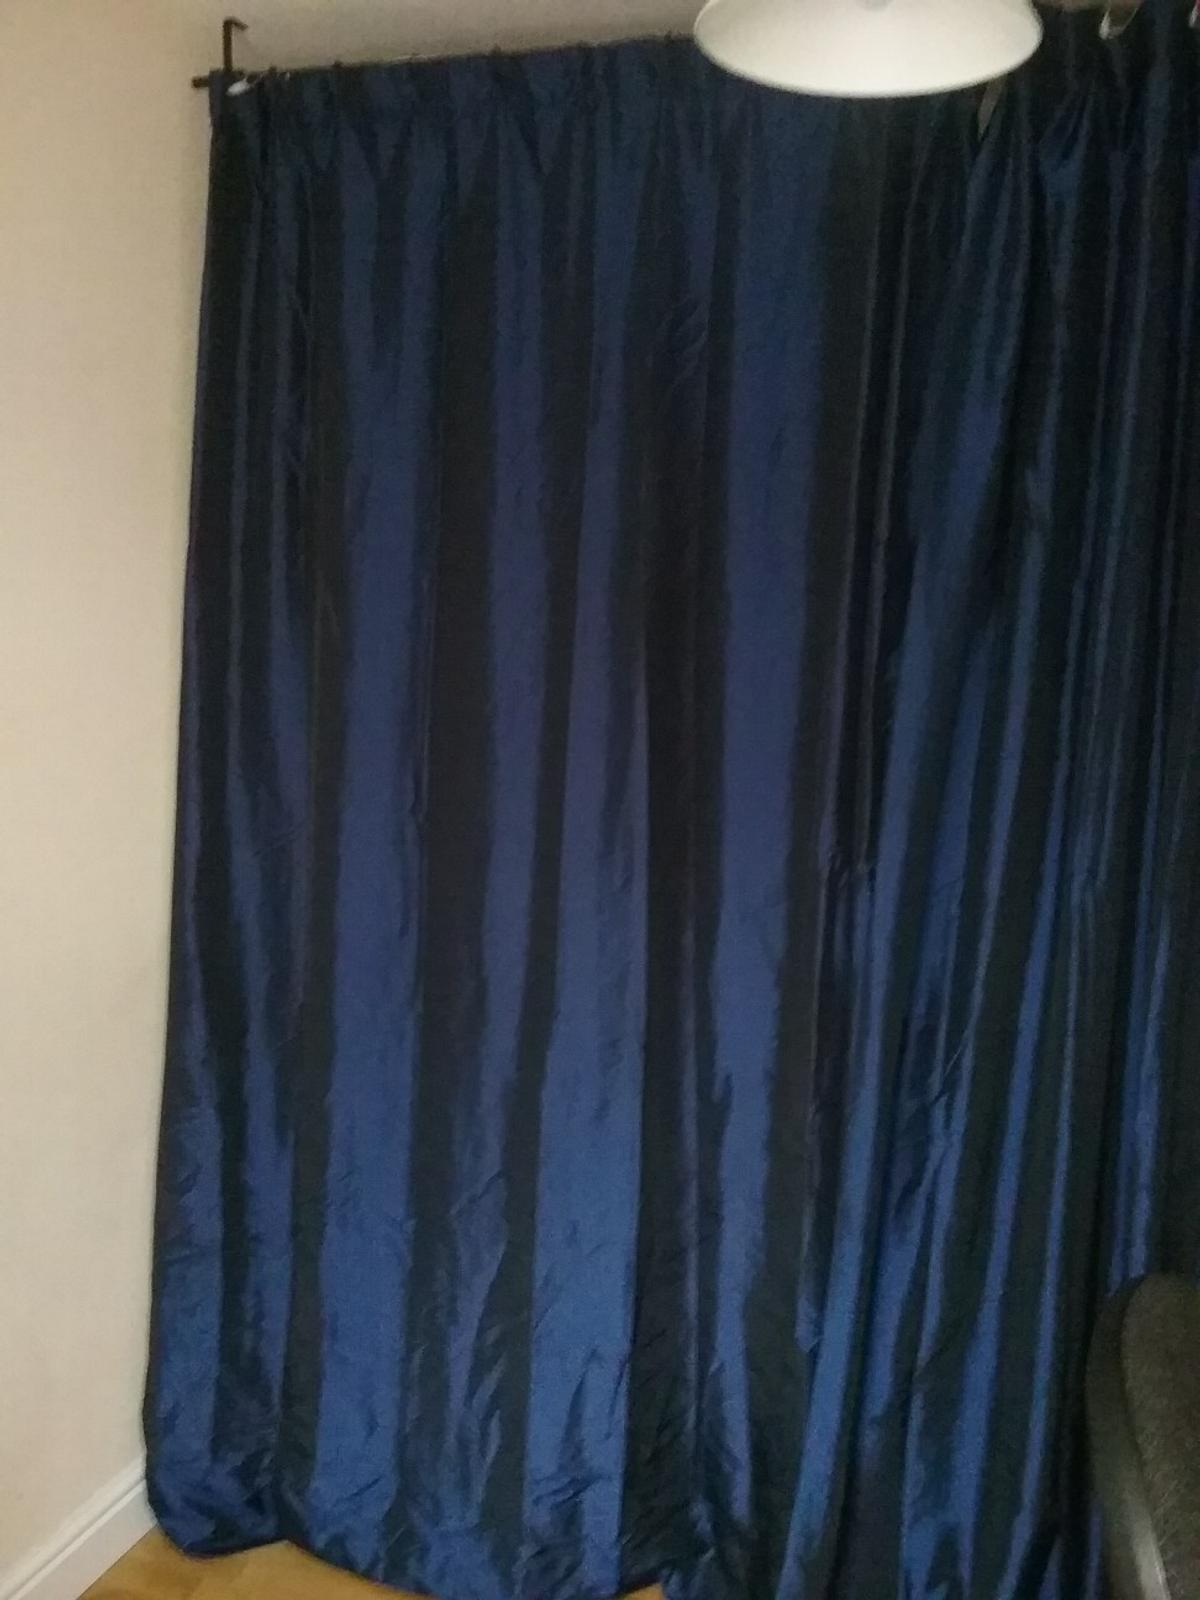 Black And Blue Curtains Midnight Blue Curtains And Black Metal Pole